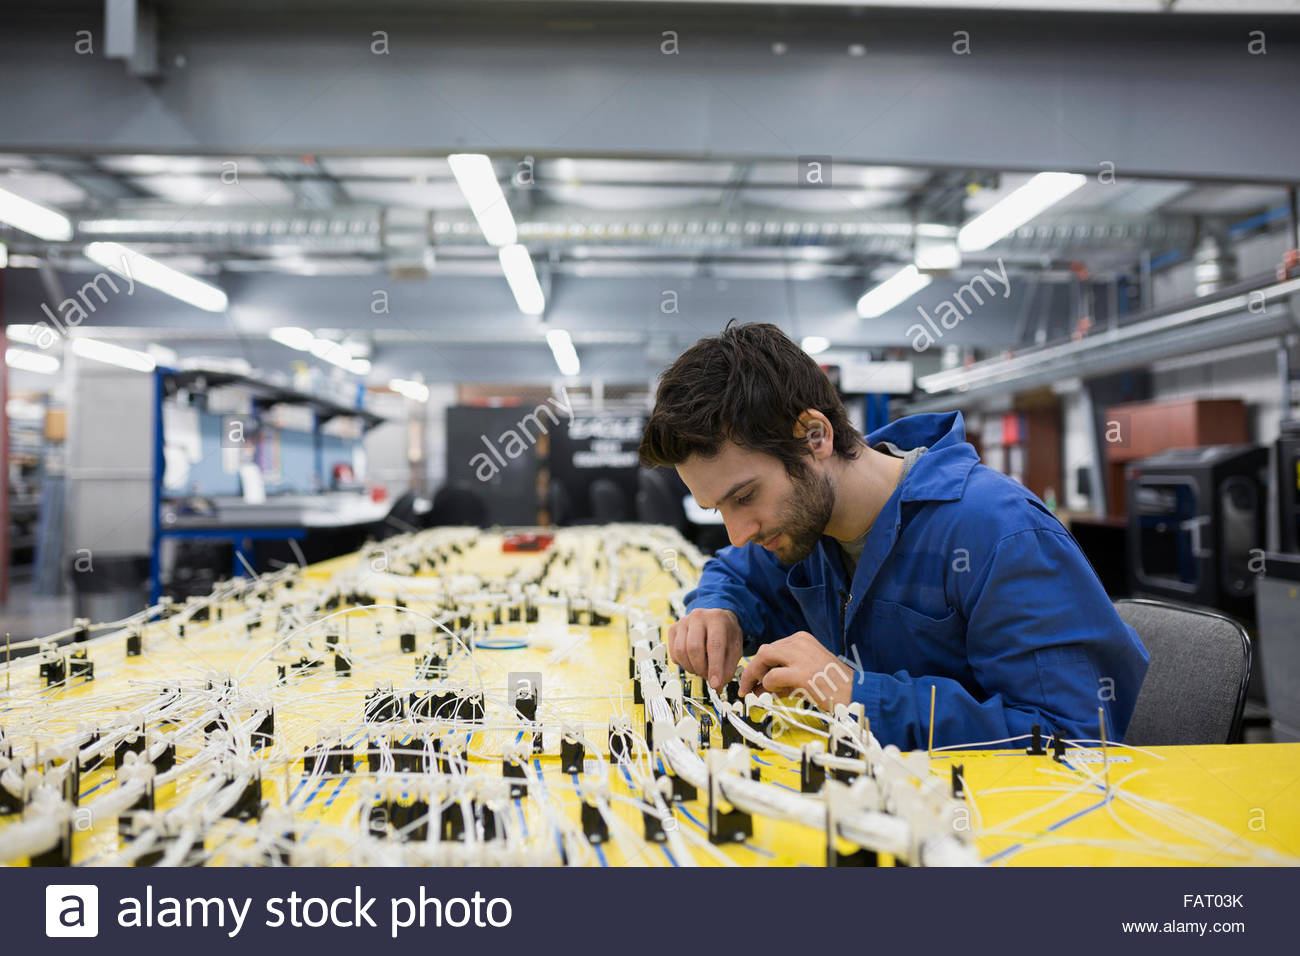 wiring harness stock photos wiring harness stock images alamy Electrical Wiring Harness Connectors helicopter technician repairing wiring harness stock image